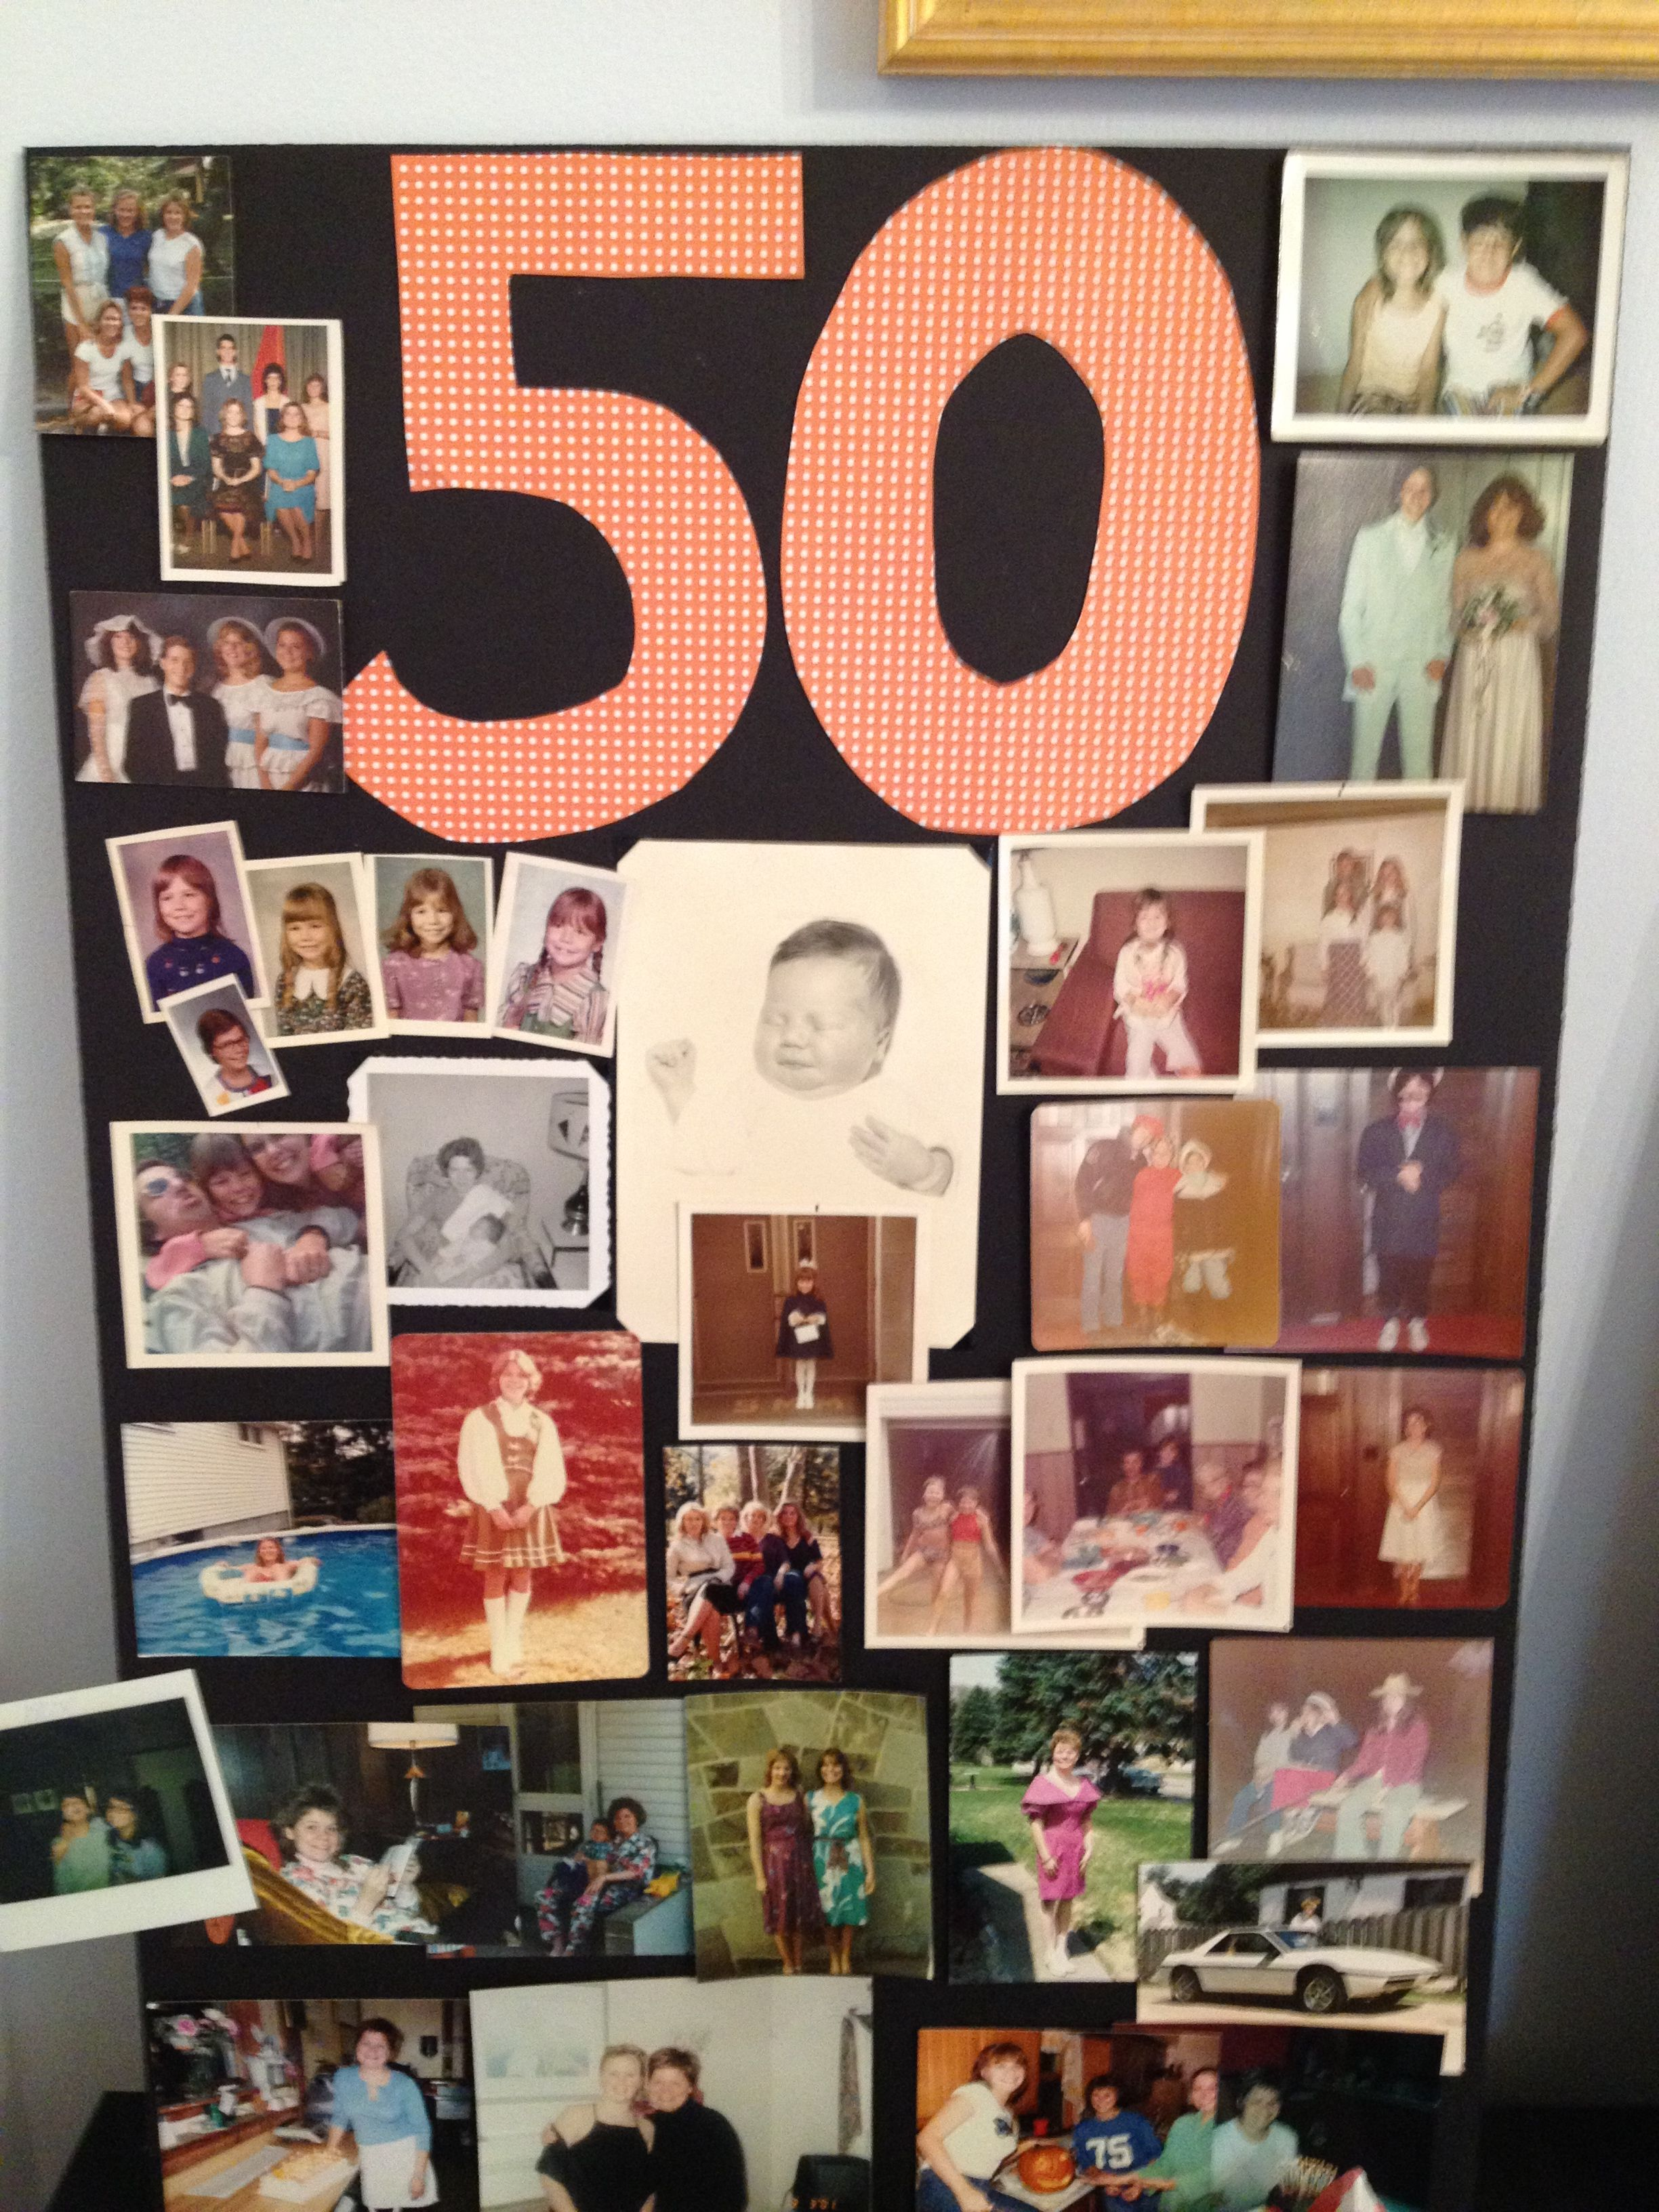 Birthday Photo Board 40th Birthday Party Men 40th Birthday Parties Mens Birthday Party Celebrate his big 40th birthday with a thoughtful gift. birthday photo board 40th birthday